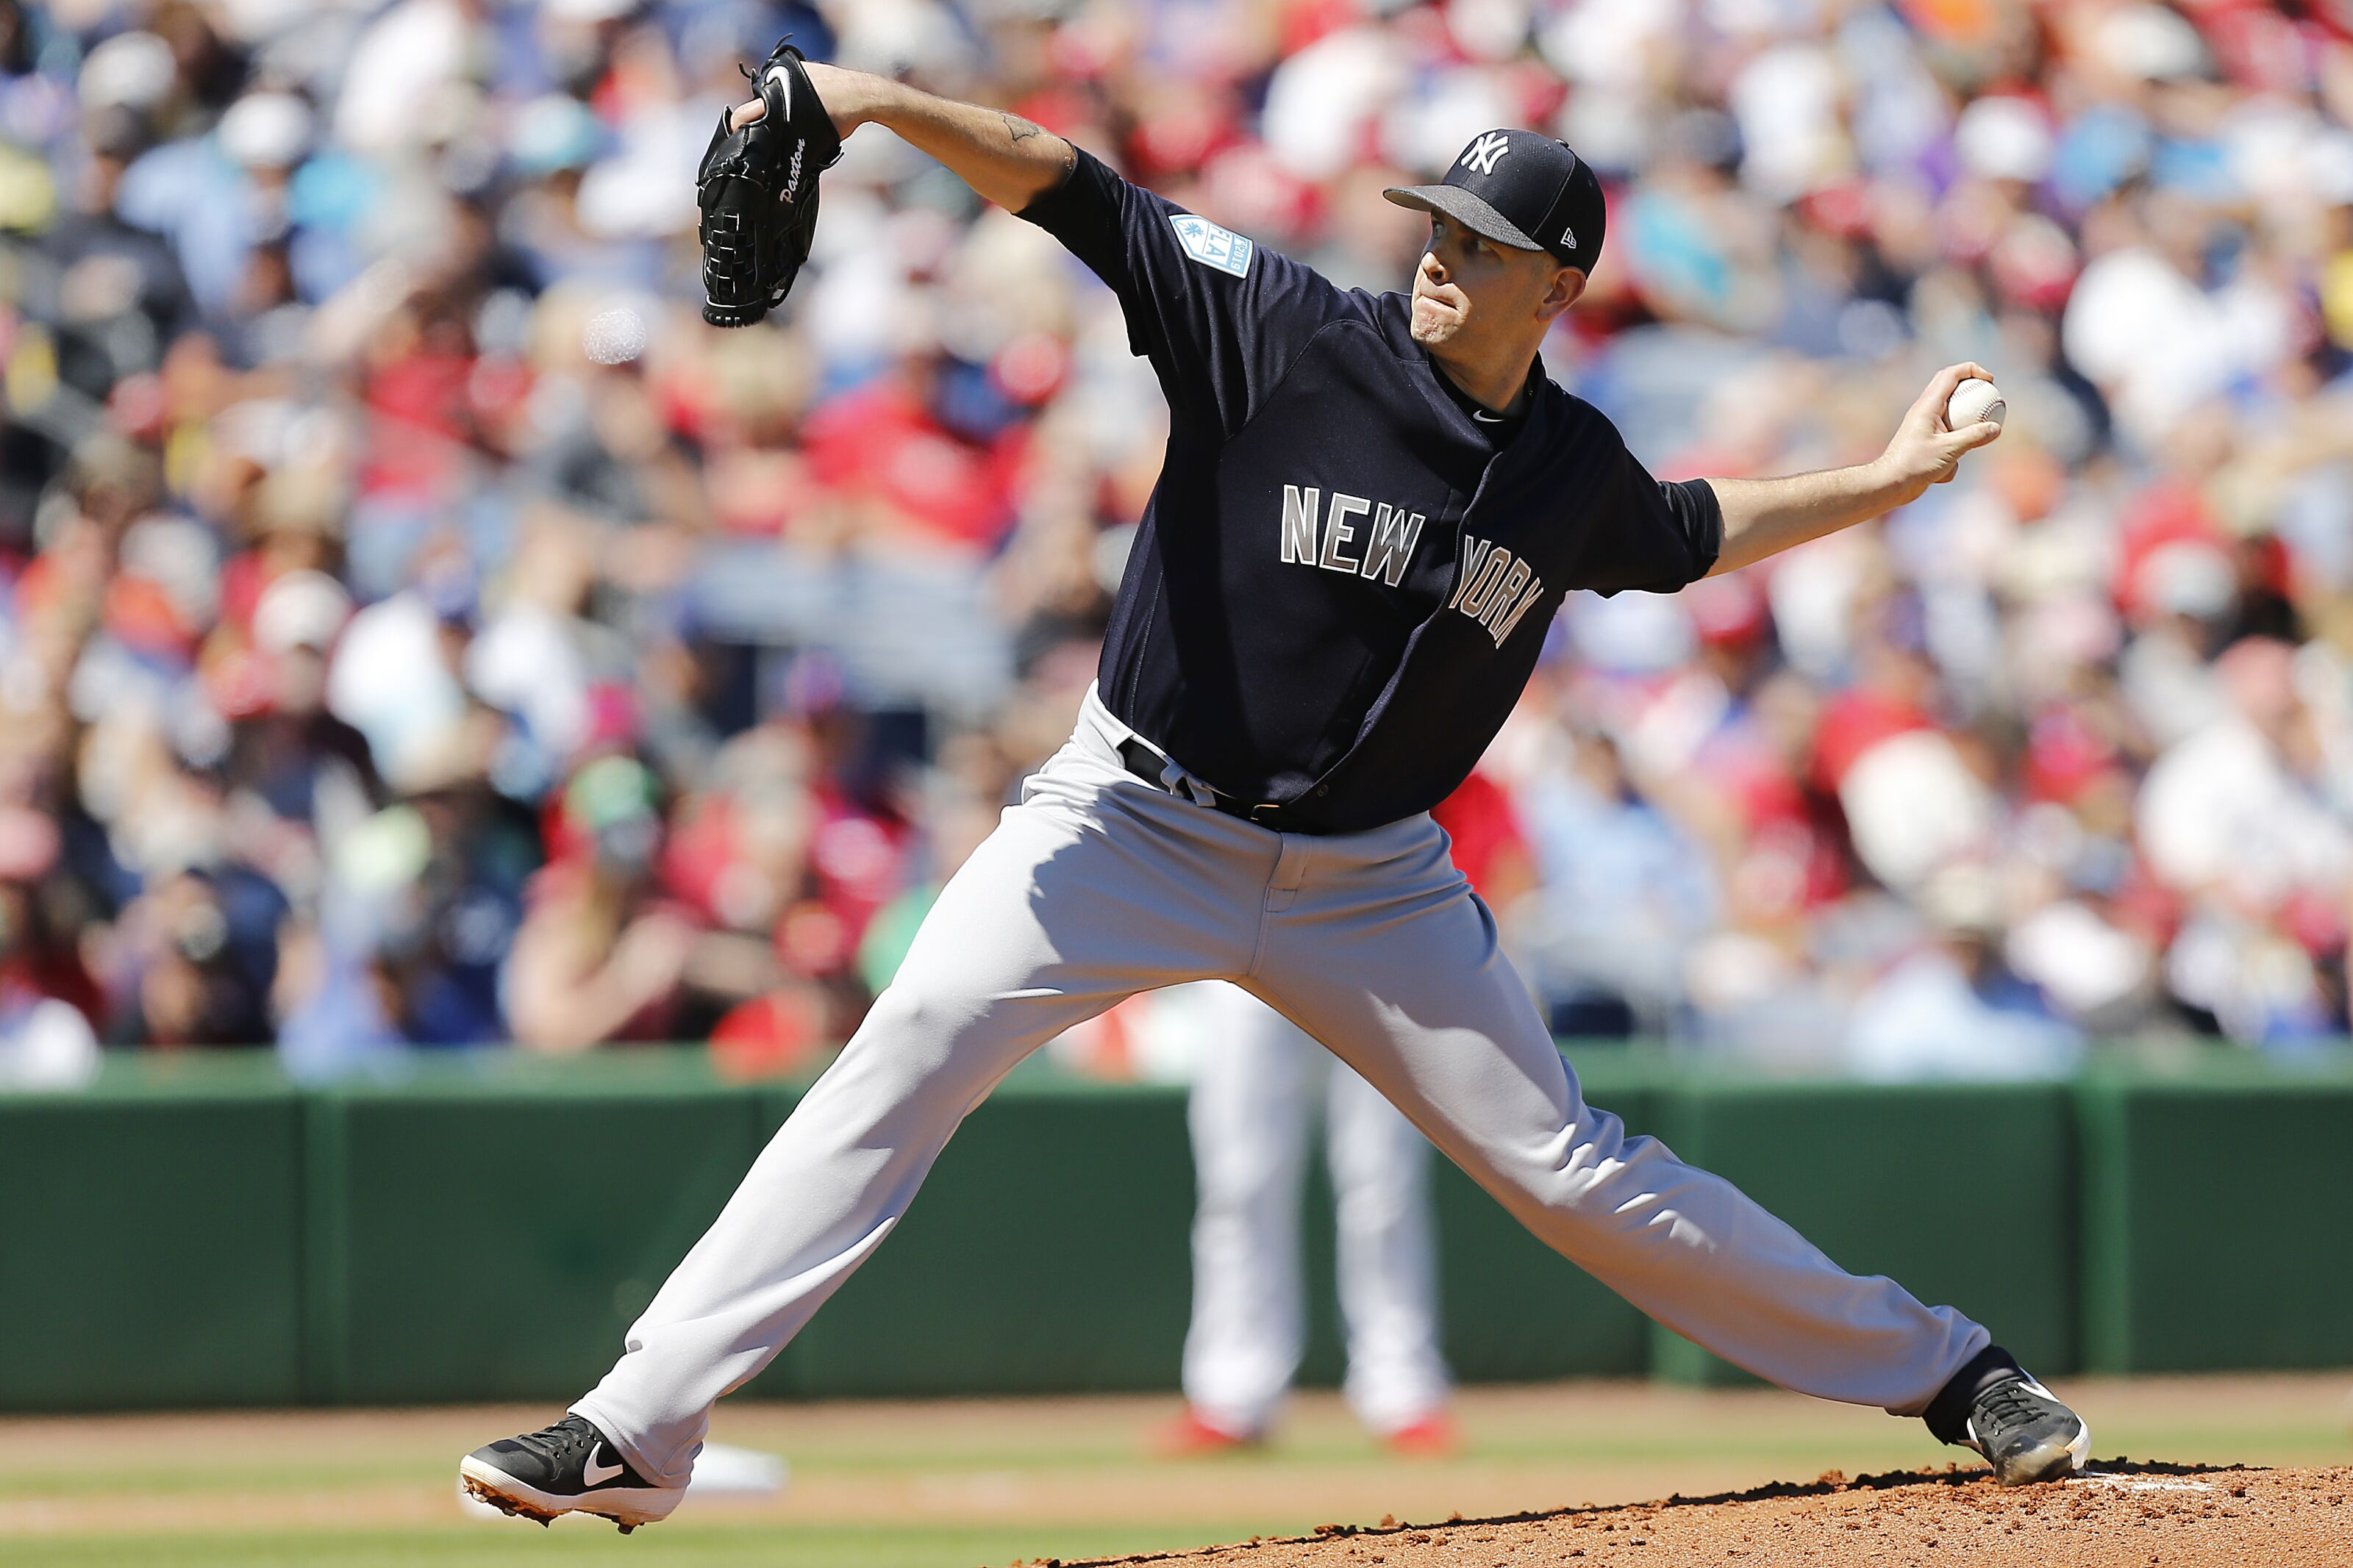 CLEARWATER, FLORIDA - MARCH 07: James Paxton #65 of the New York Yankees in action against the Philadelphia Phillies during the Grapefruit League spring training game at Spectrum Field on March 07, 2019 in Clearwater, Florida. (Photo by Michael Reaves/Getty Images)